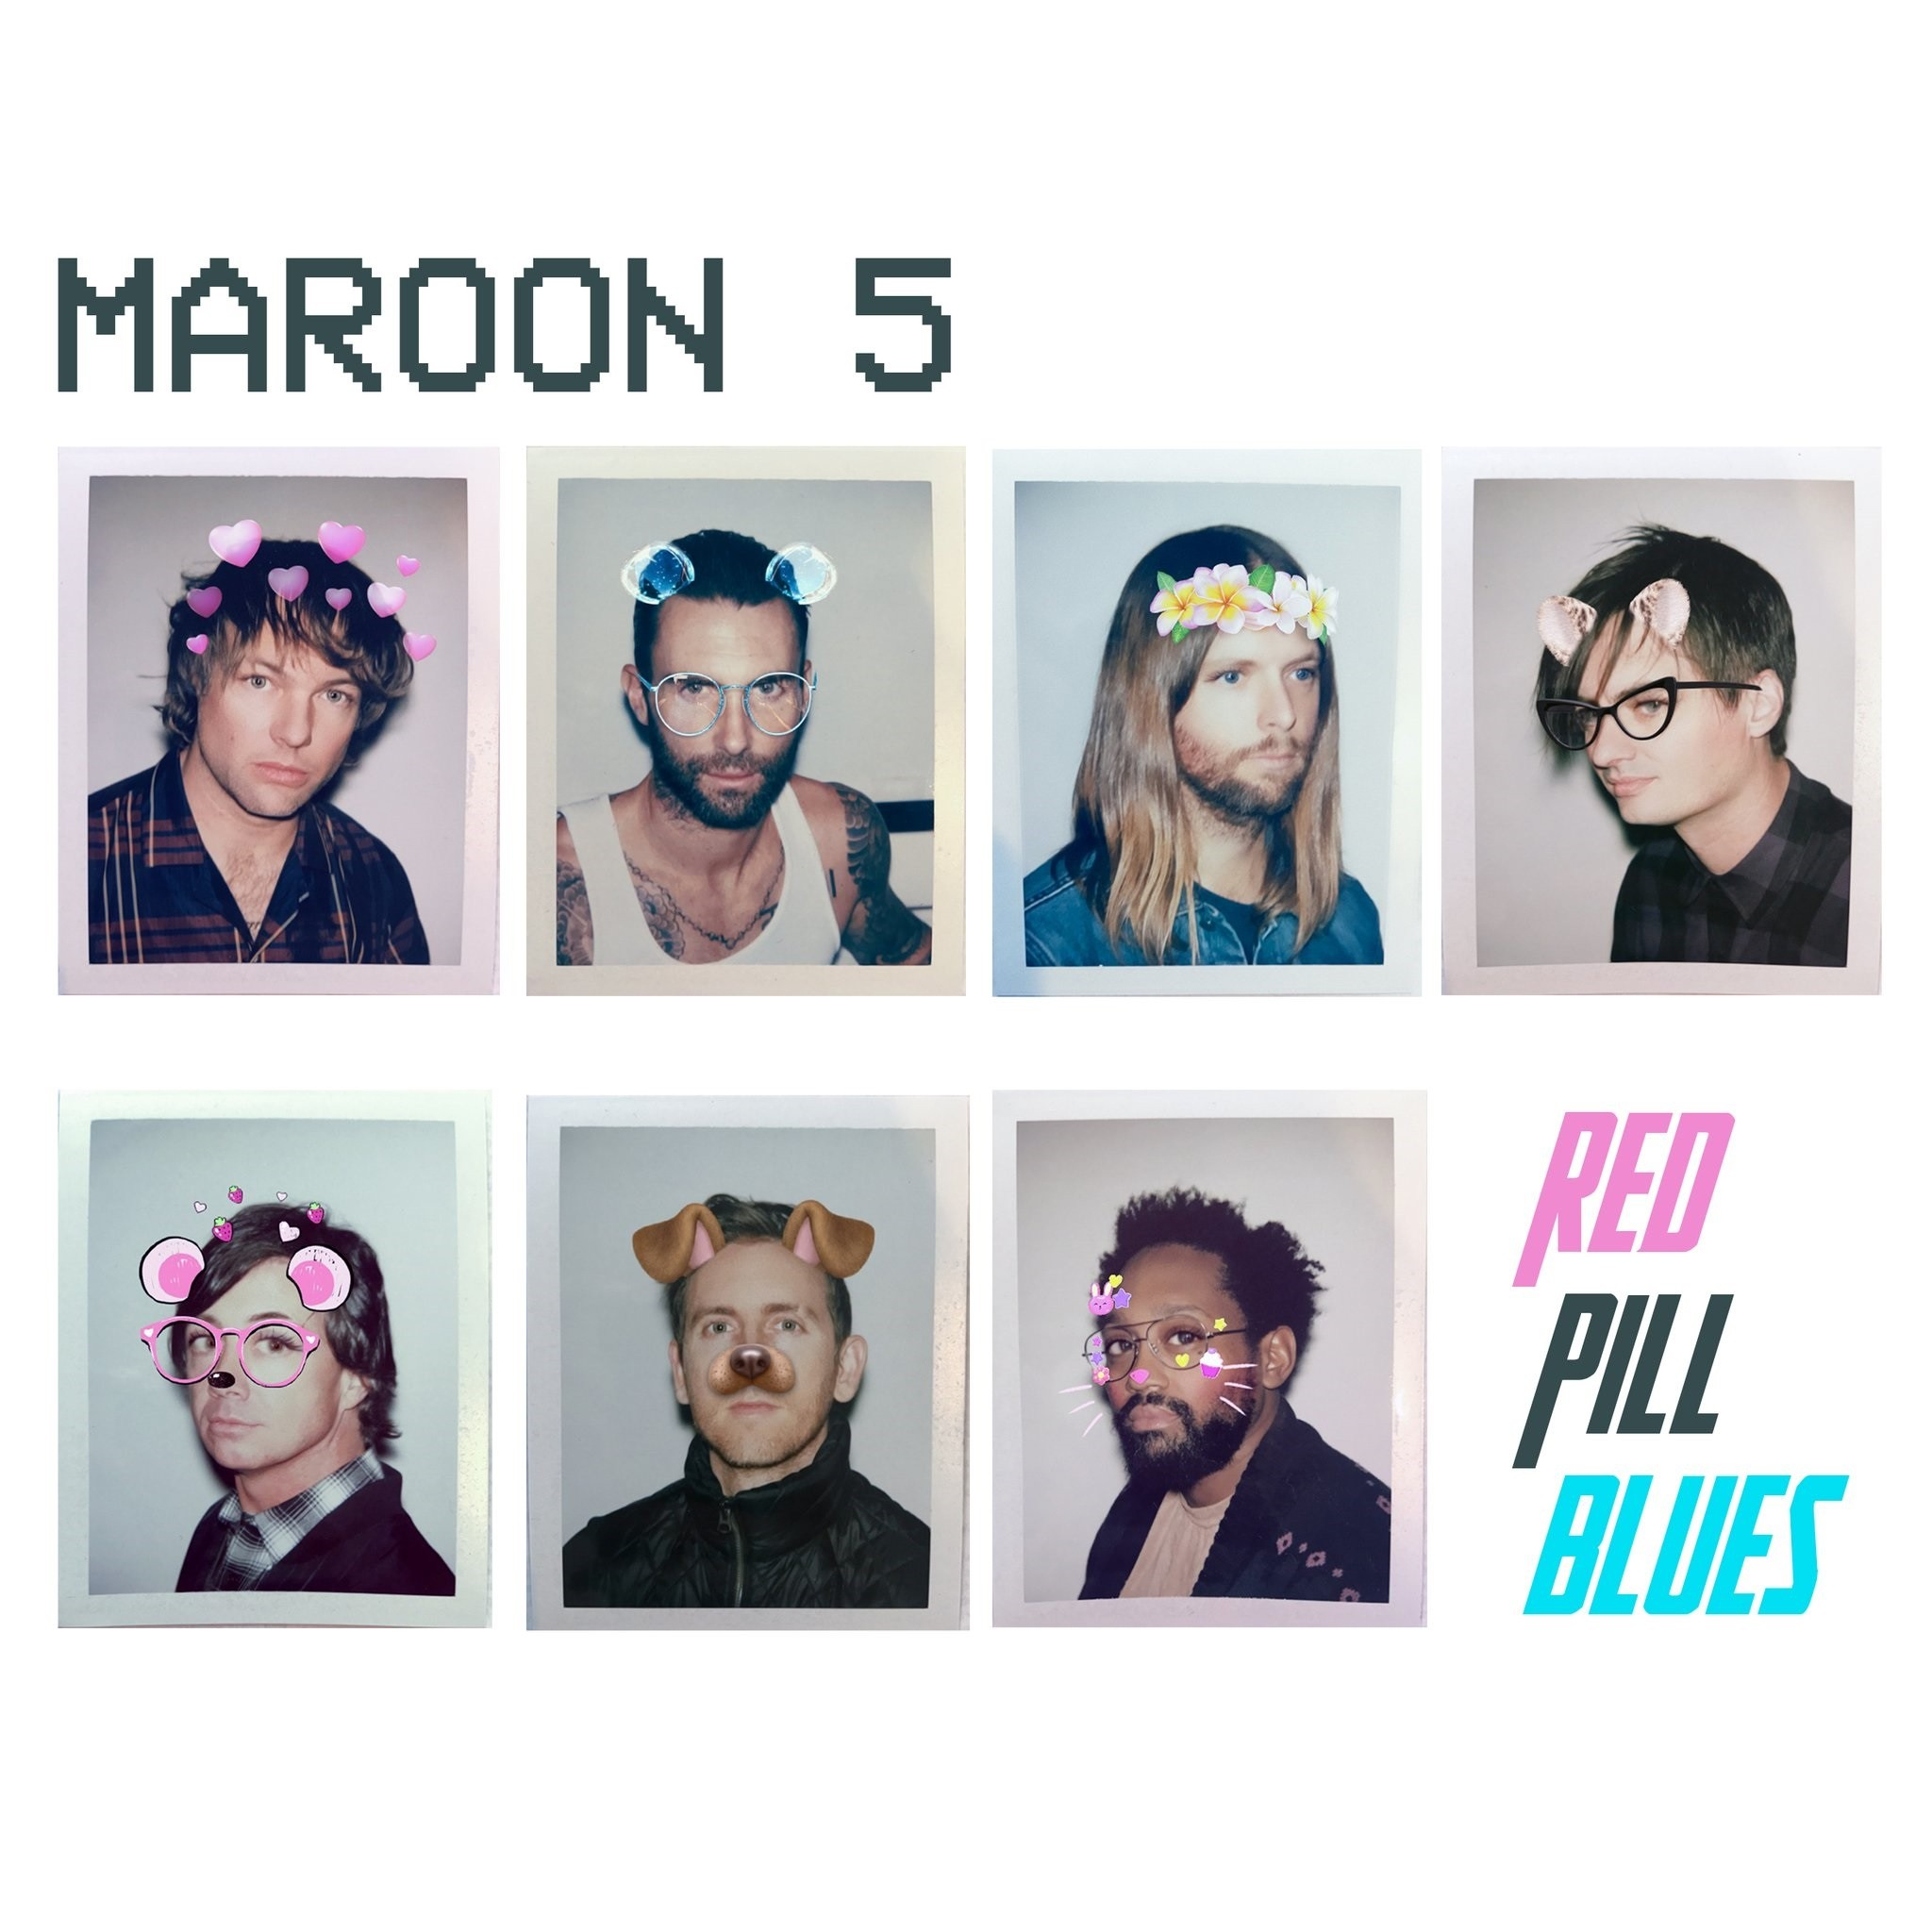 A capa do novo disco do Maroon 5, 'Red Pill Blus' (Foto: Divulgao)